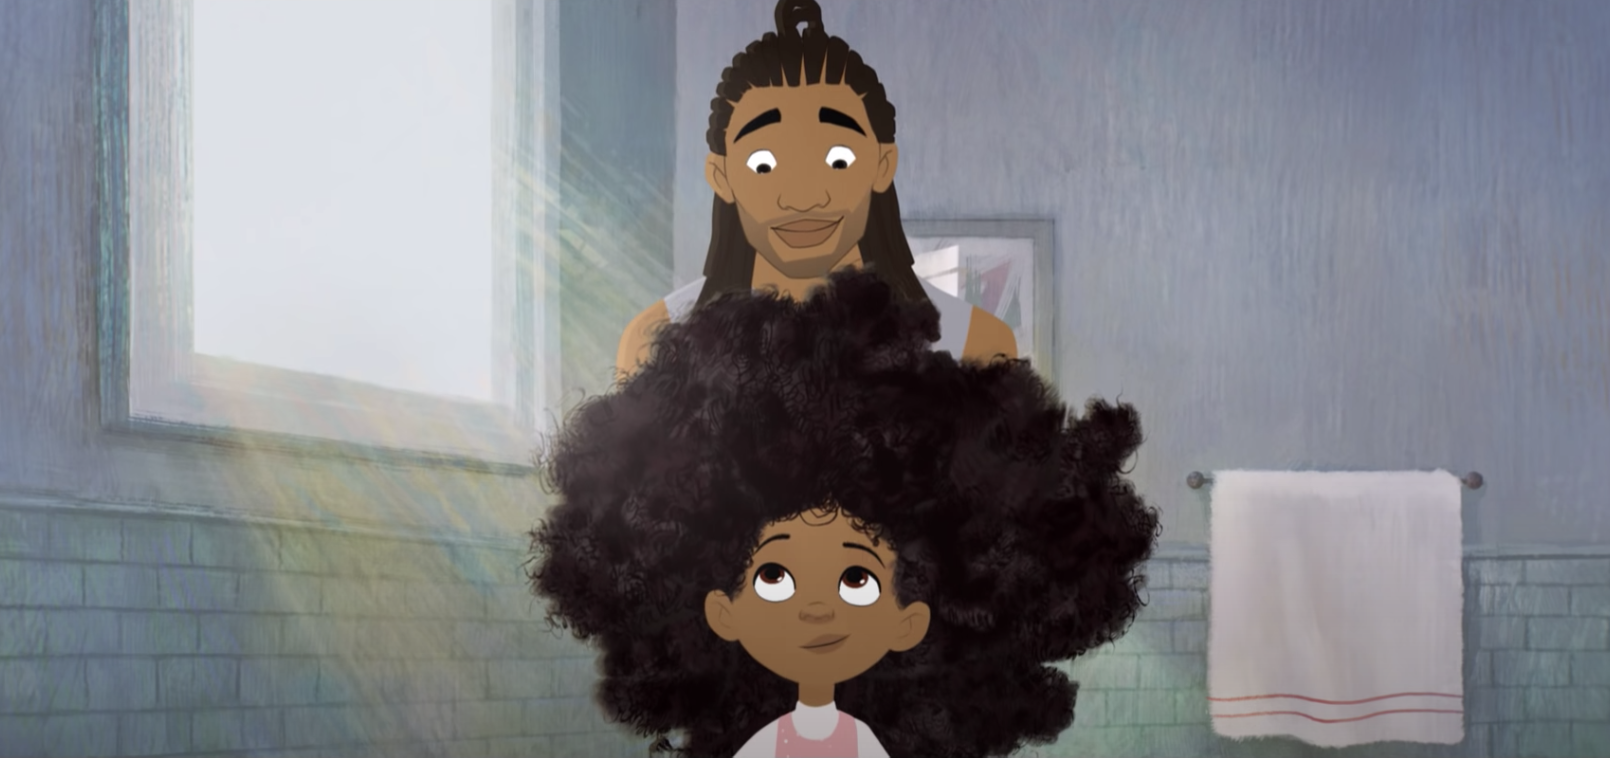 A Black man with shoulder-length locks smiles down at his daughter, a young Black girl with unstyled natural hair.